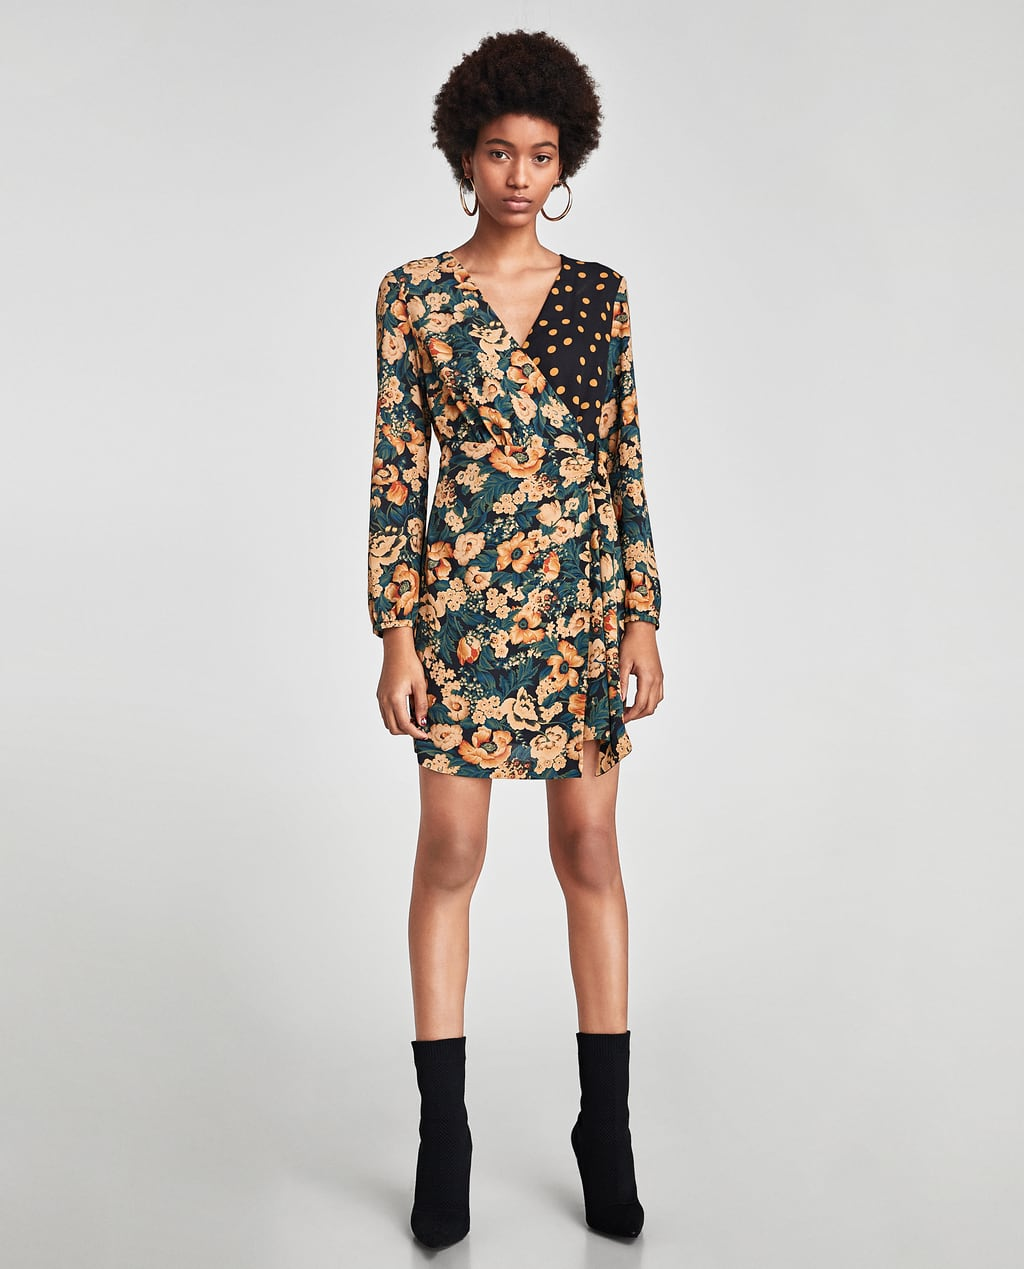 Zara Floral and Polka Dot Print Dress